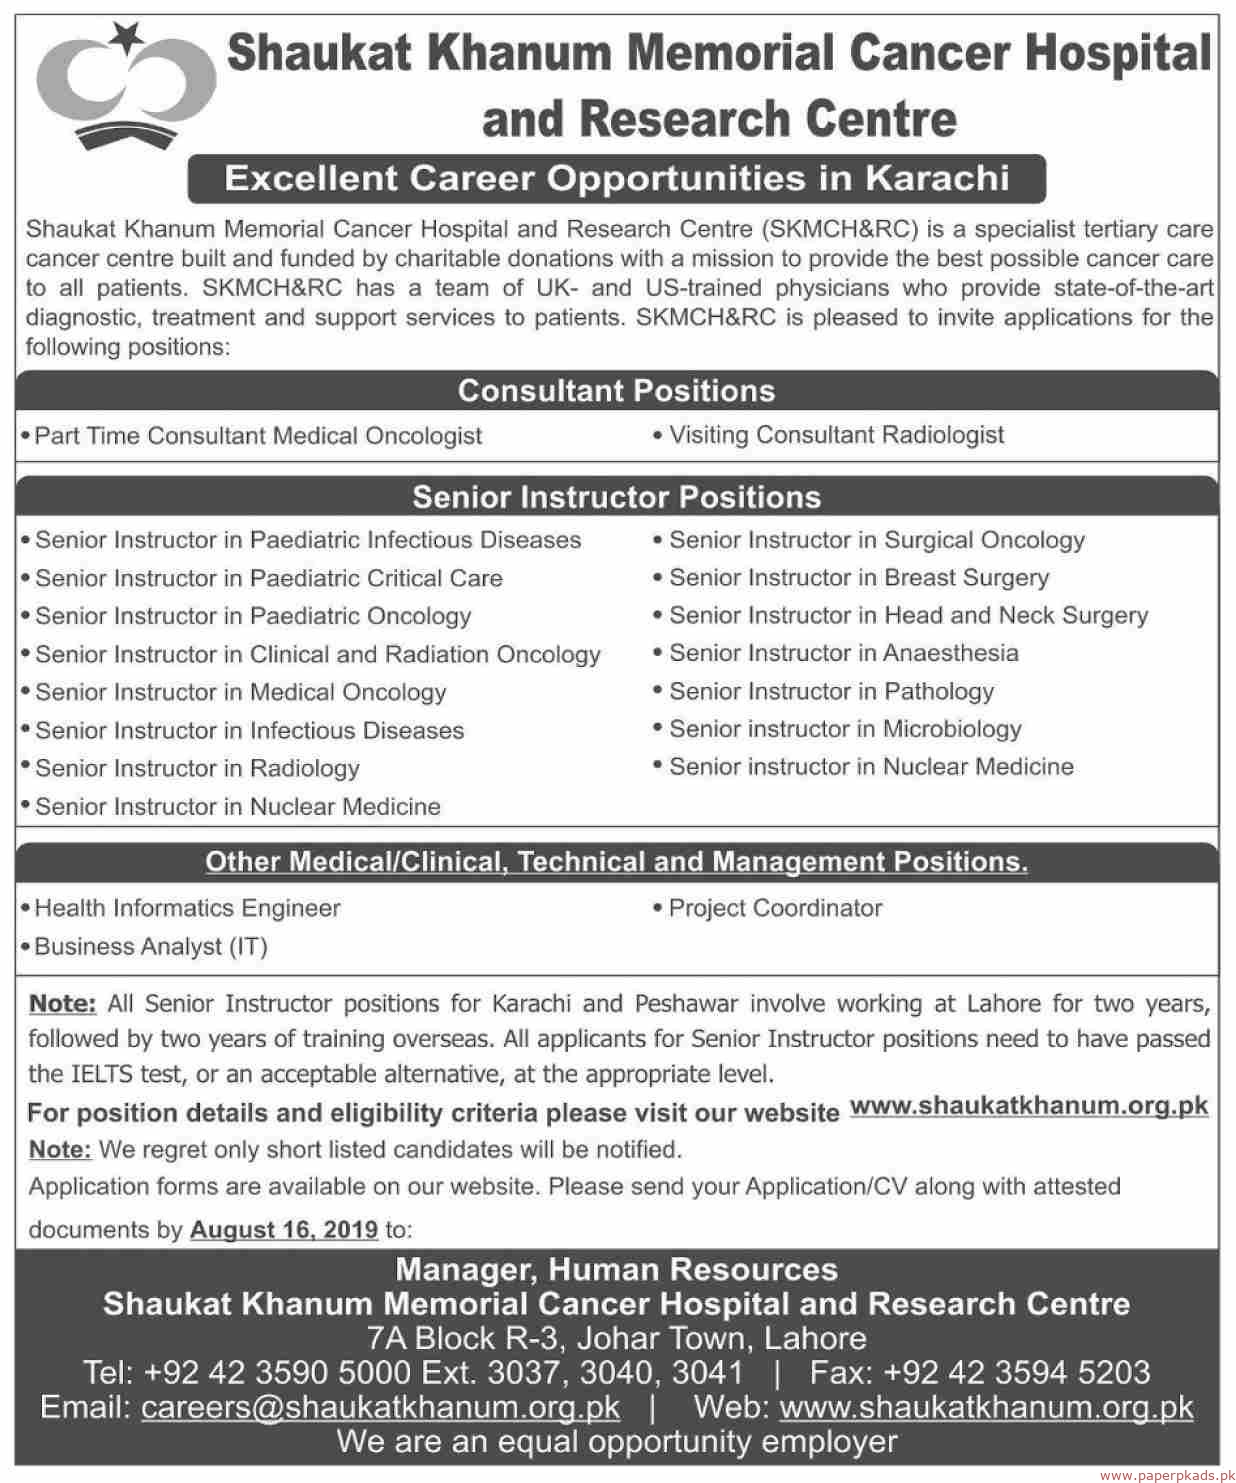 Shaukat Khanum Memorial cancer Hospital and Research Centre Jobs 2019 Latest